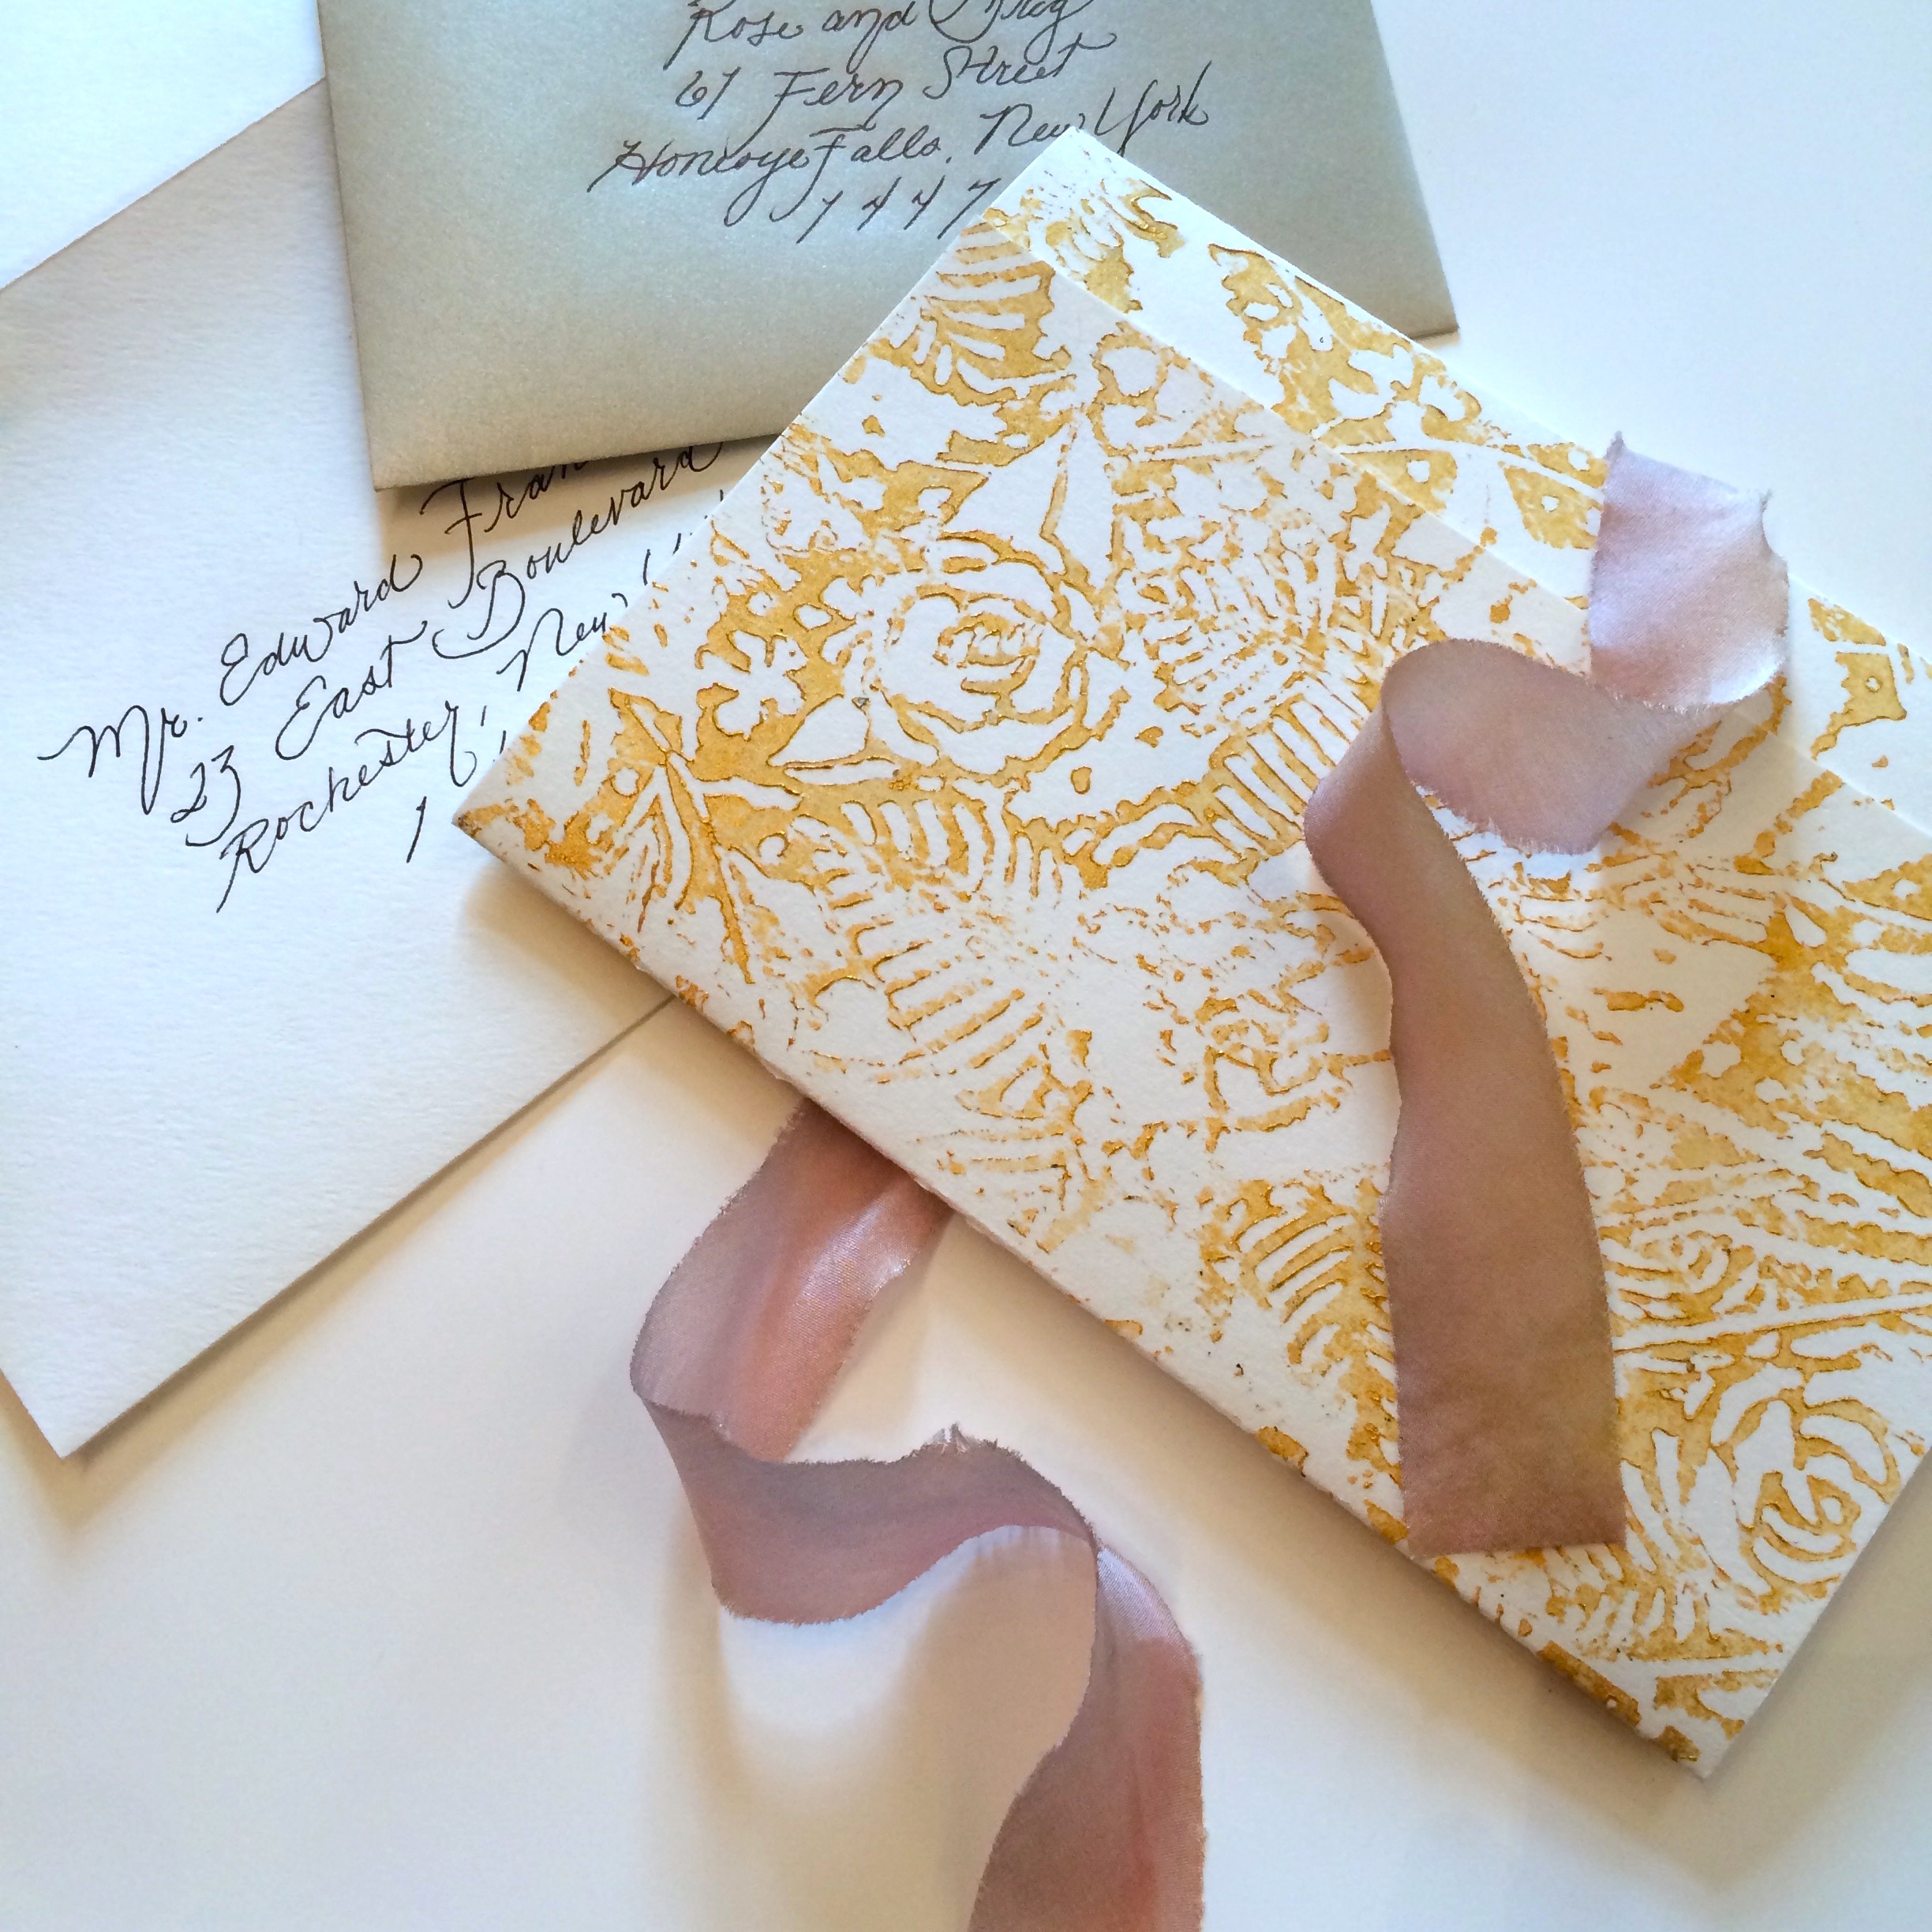 Custom Gold Floral Block Print Wedding Invitations - Louelle Design Studio - Rochester New York